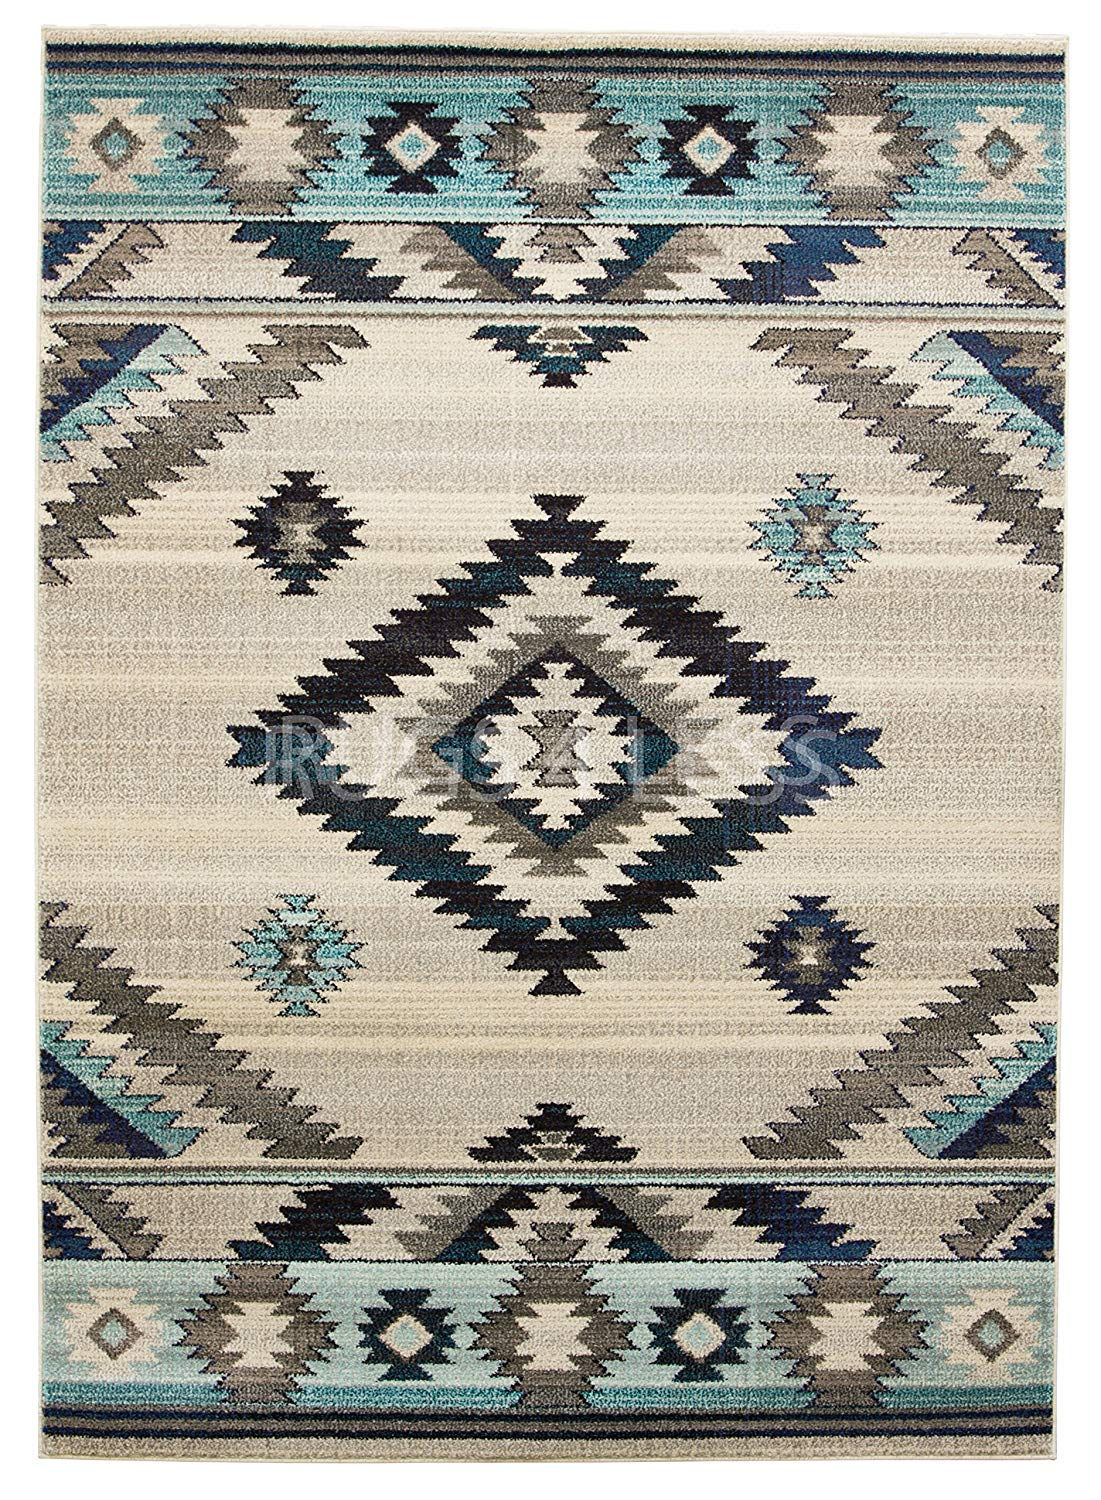 Get Quotations Rugs 4 Less Collection Southwest Native American Indian Area Rug Design R4l 1033 Bone Gray Turquoise